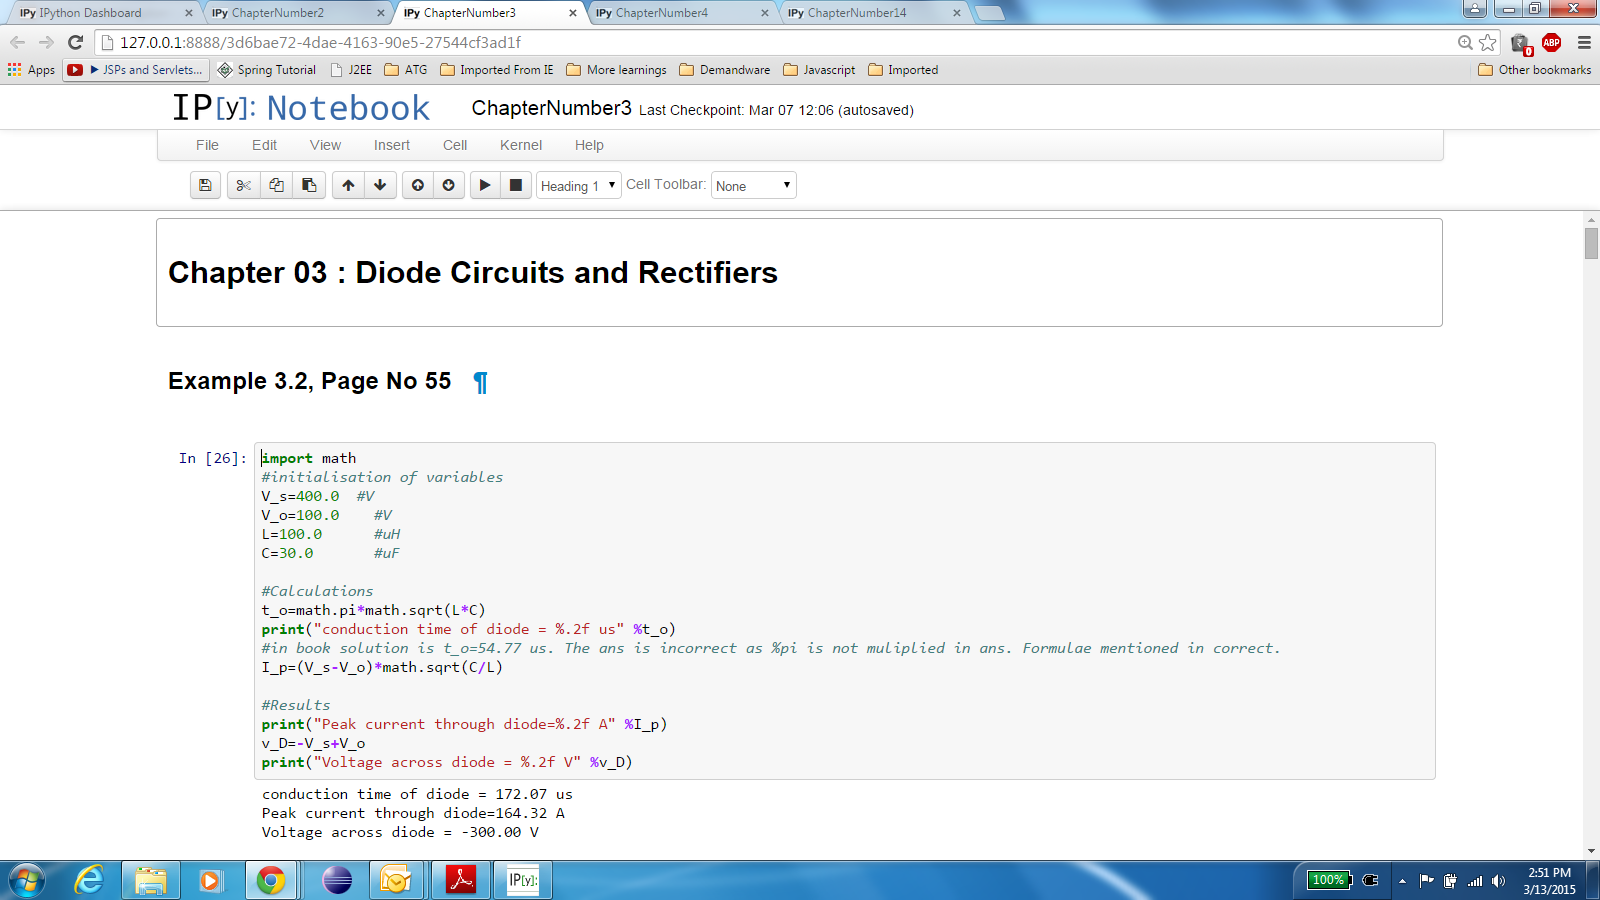 Python Textbook Companion Project Fossee Iit Bombay Diode Circuits Click To View Chapter 03 And Rectifiers